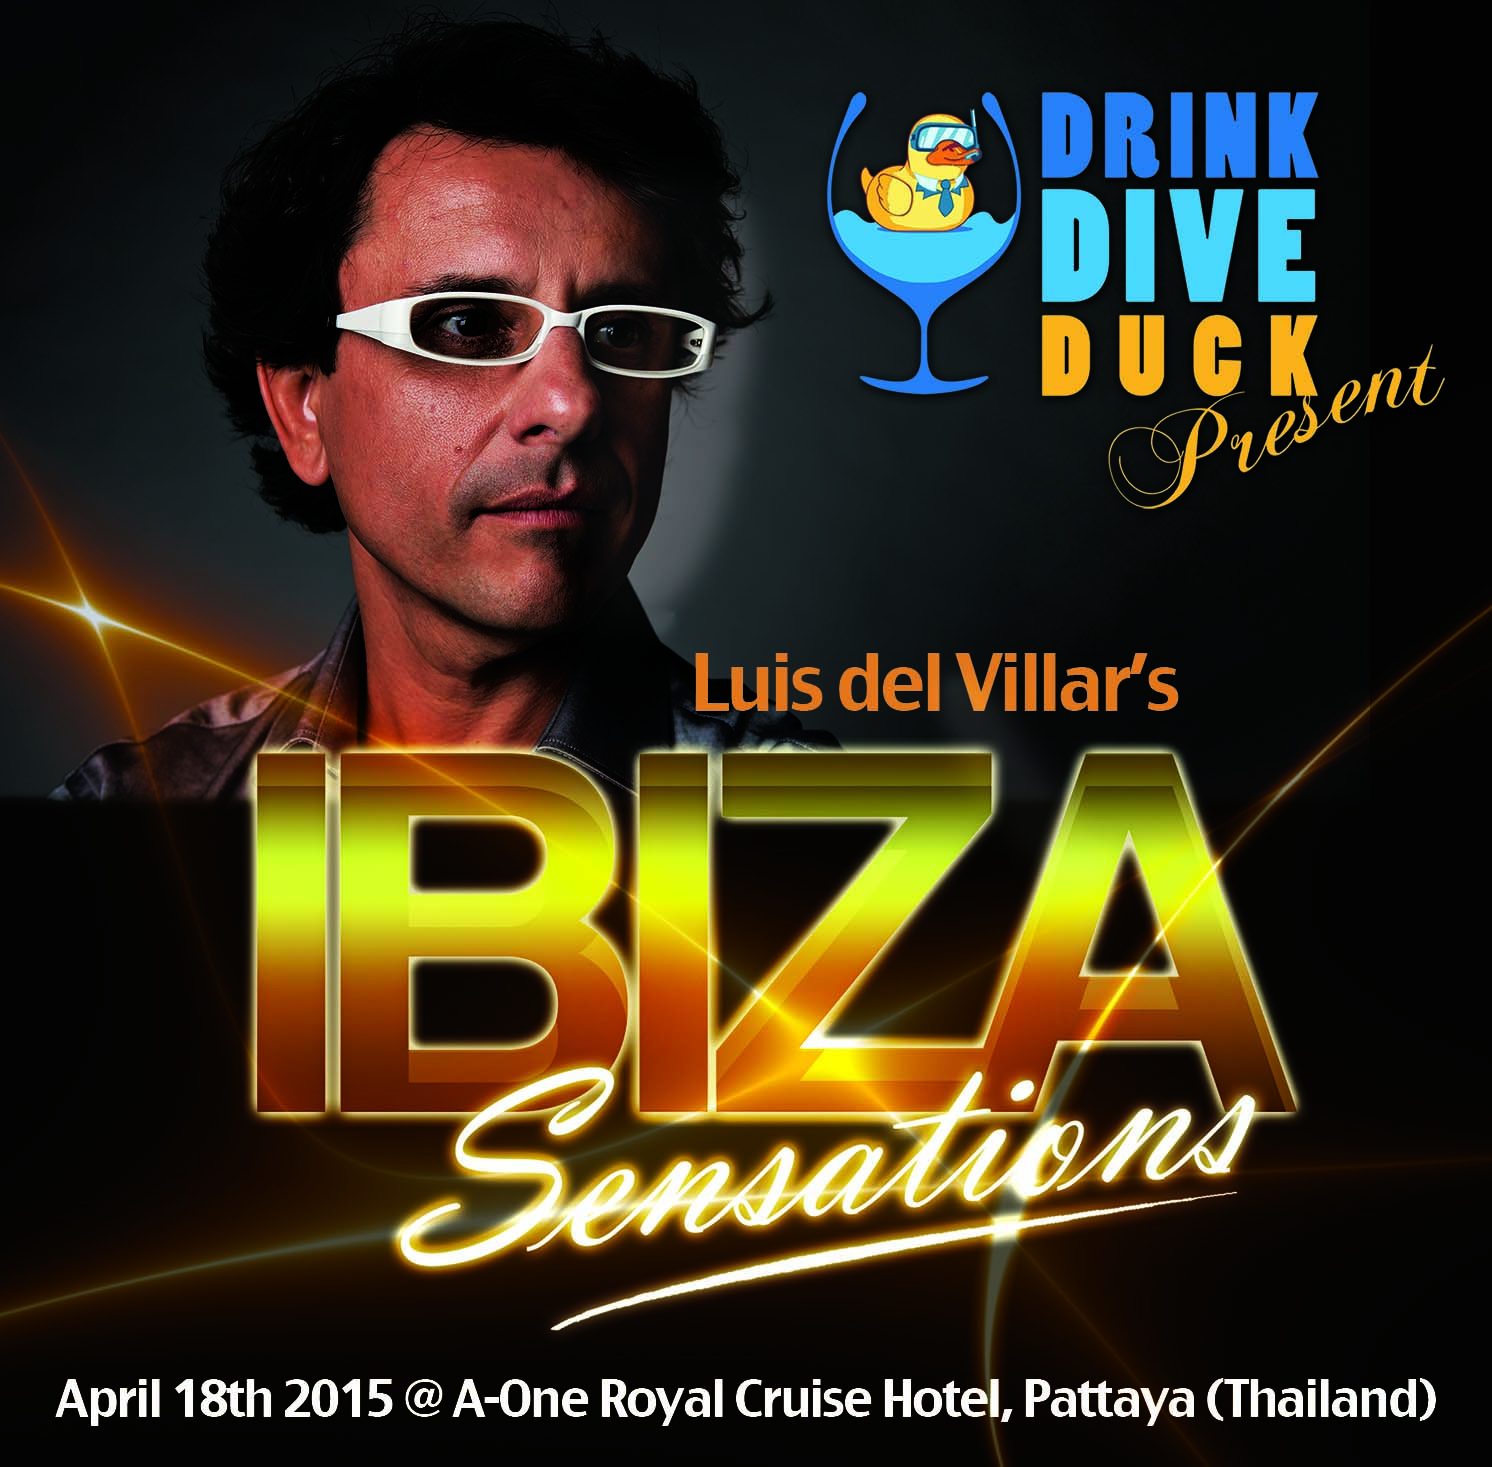 Artwork for Ibiza Sensations 111 Drink Dive Duck @ A-One Royal Cruise Hotel Pattaya - Thailand